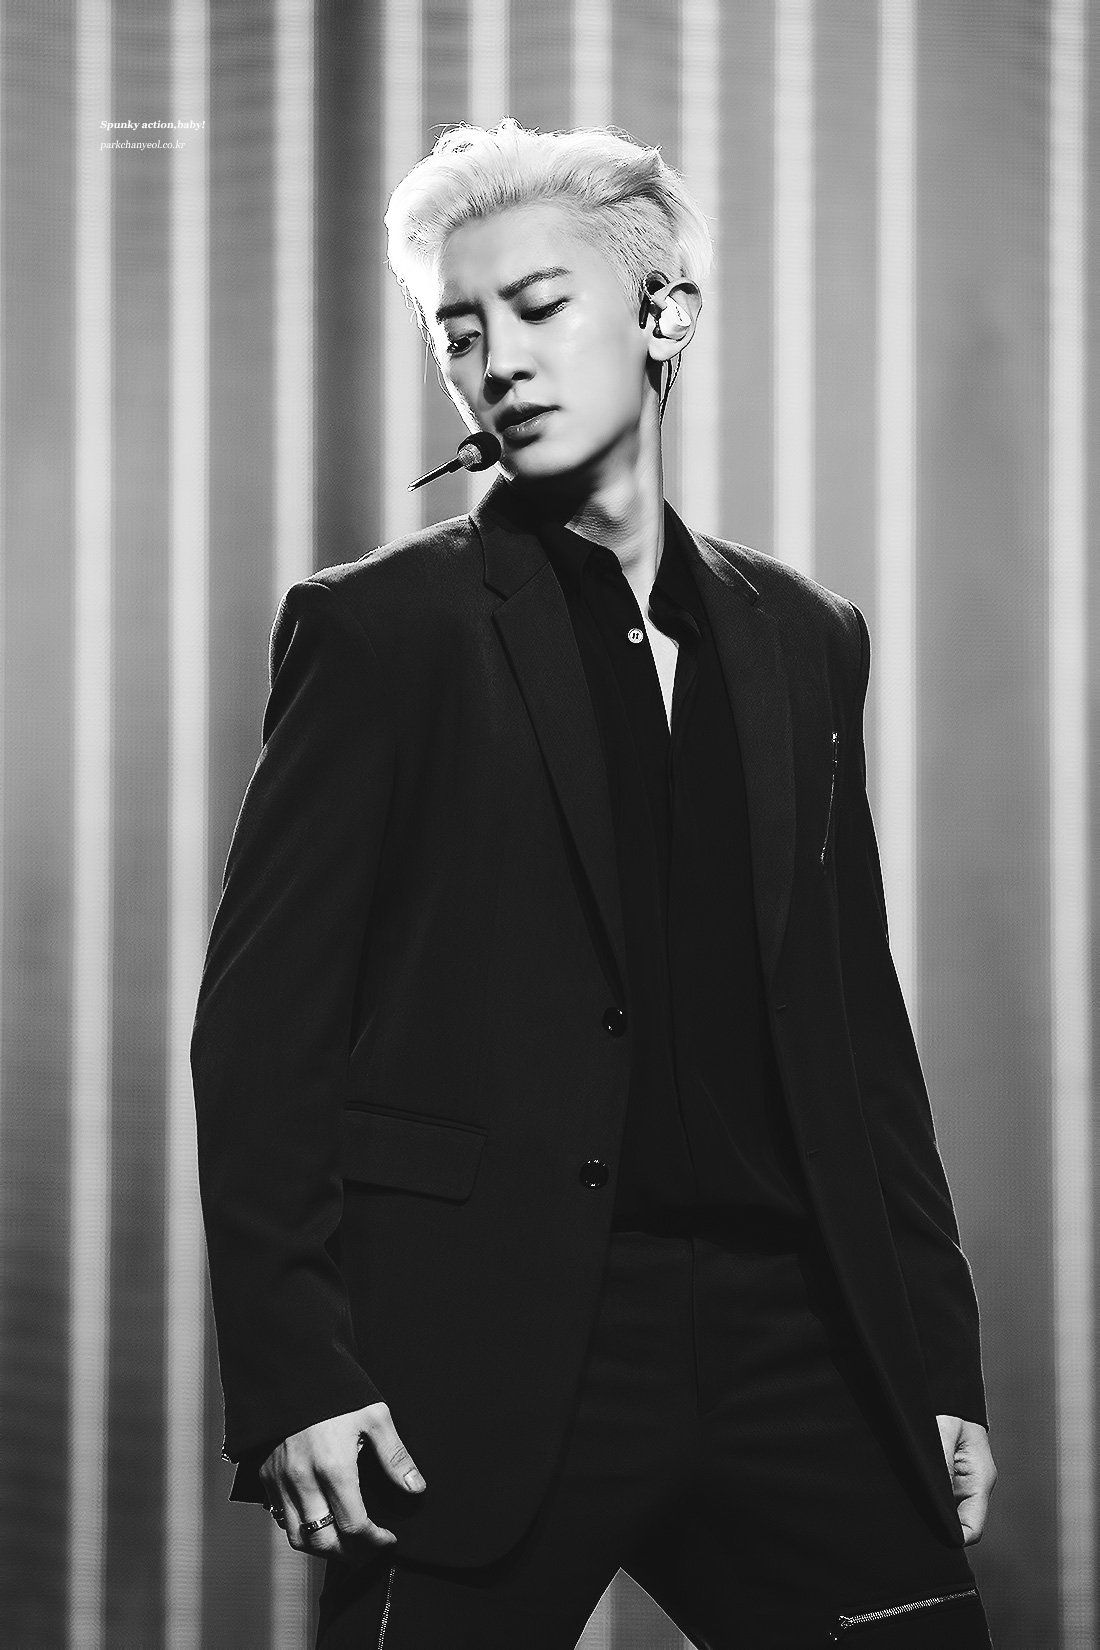 Get the Good of Exo Black Wallpaper for iPhone X Today from Uploaded by user